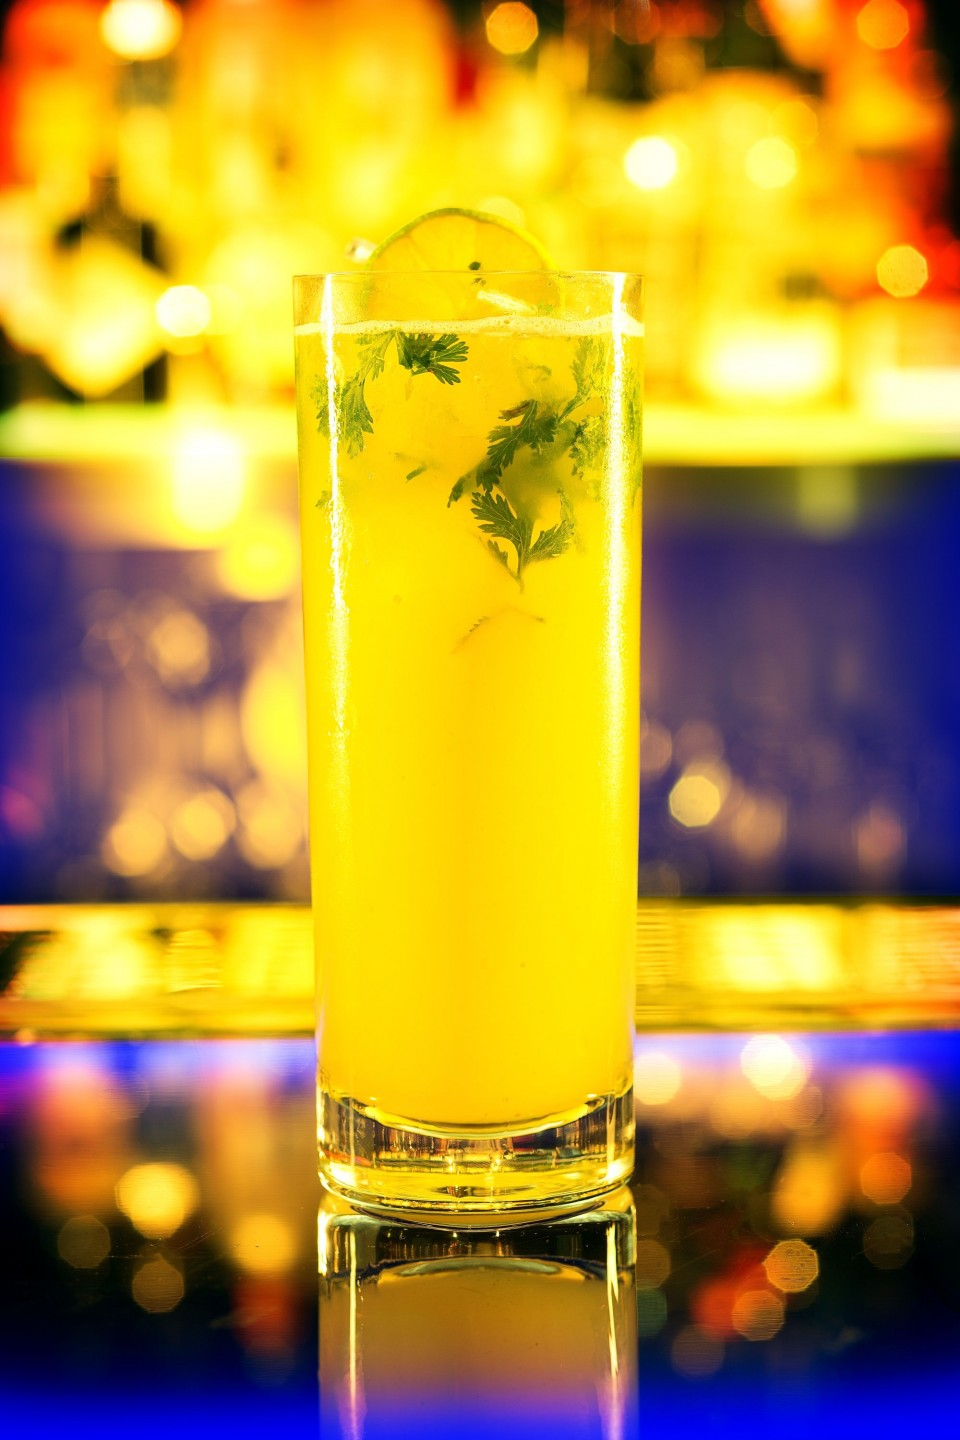 The Chinese Mule at Hakkasan is made using Masumi Okuden junmai and Hangar One vodka.